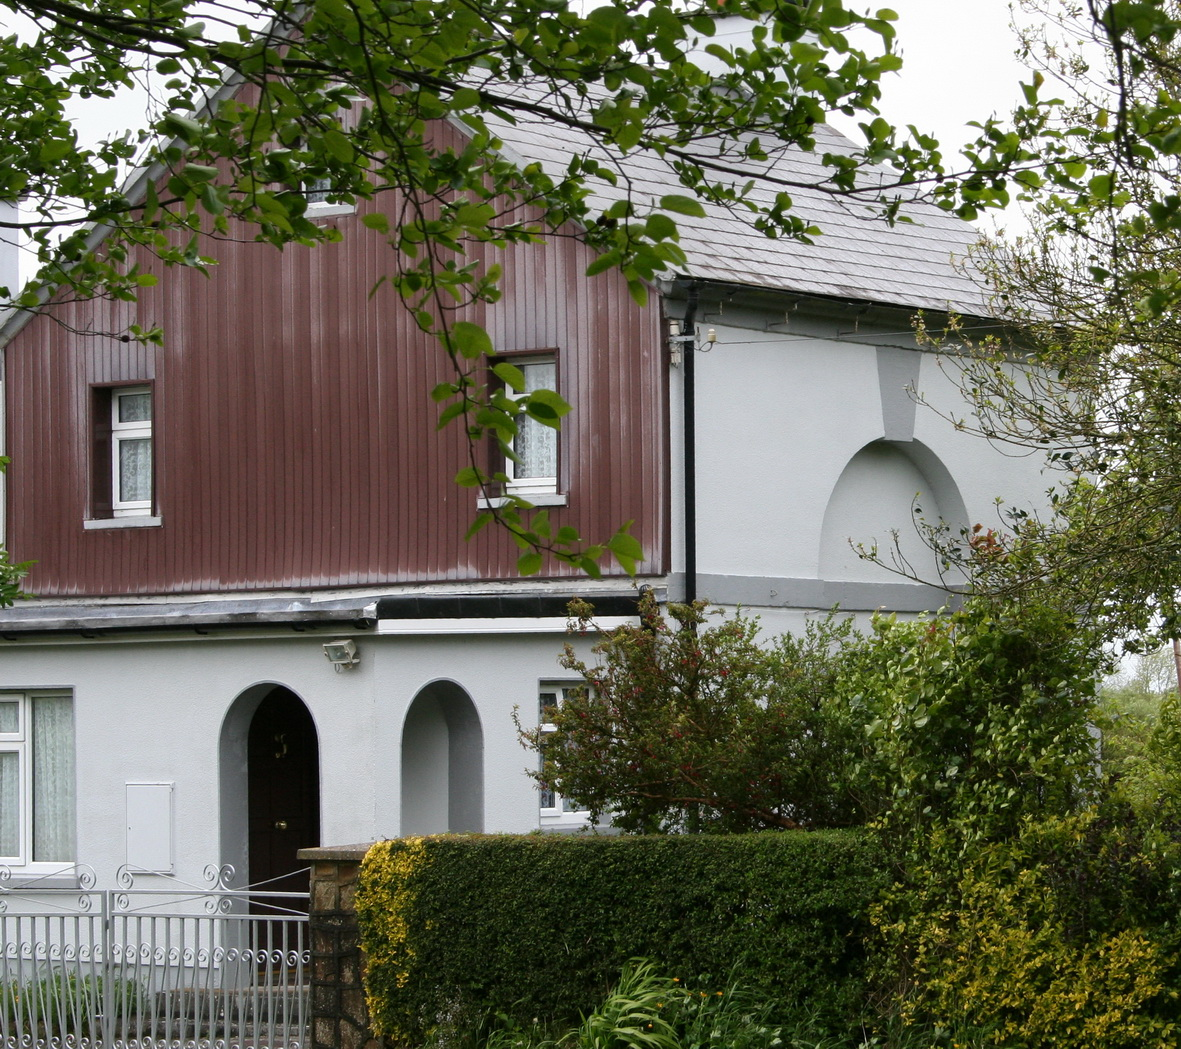 The Omer lockhouse, Banagher